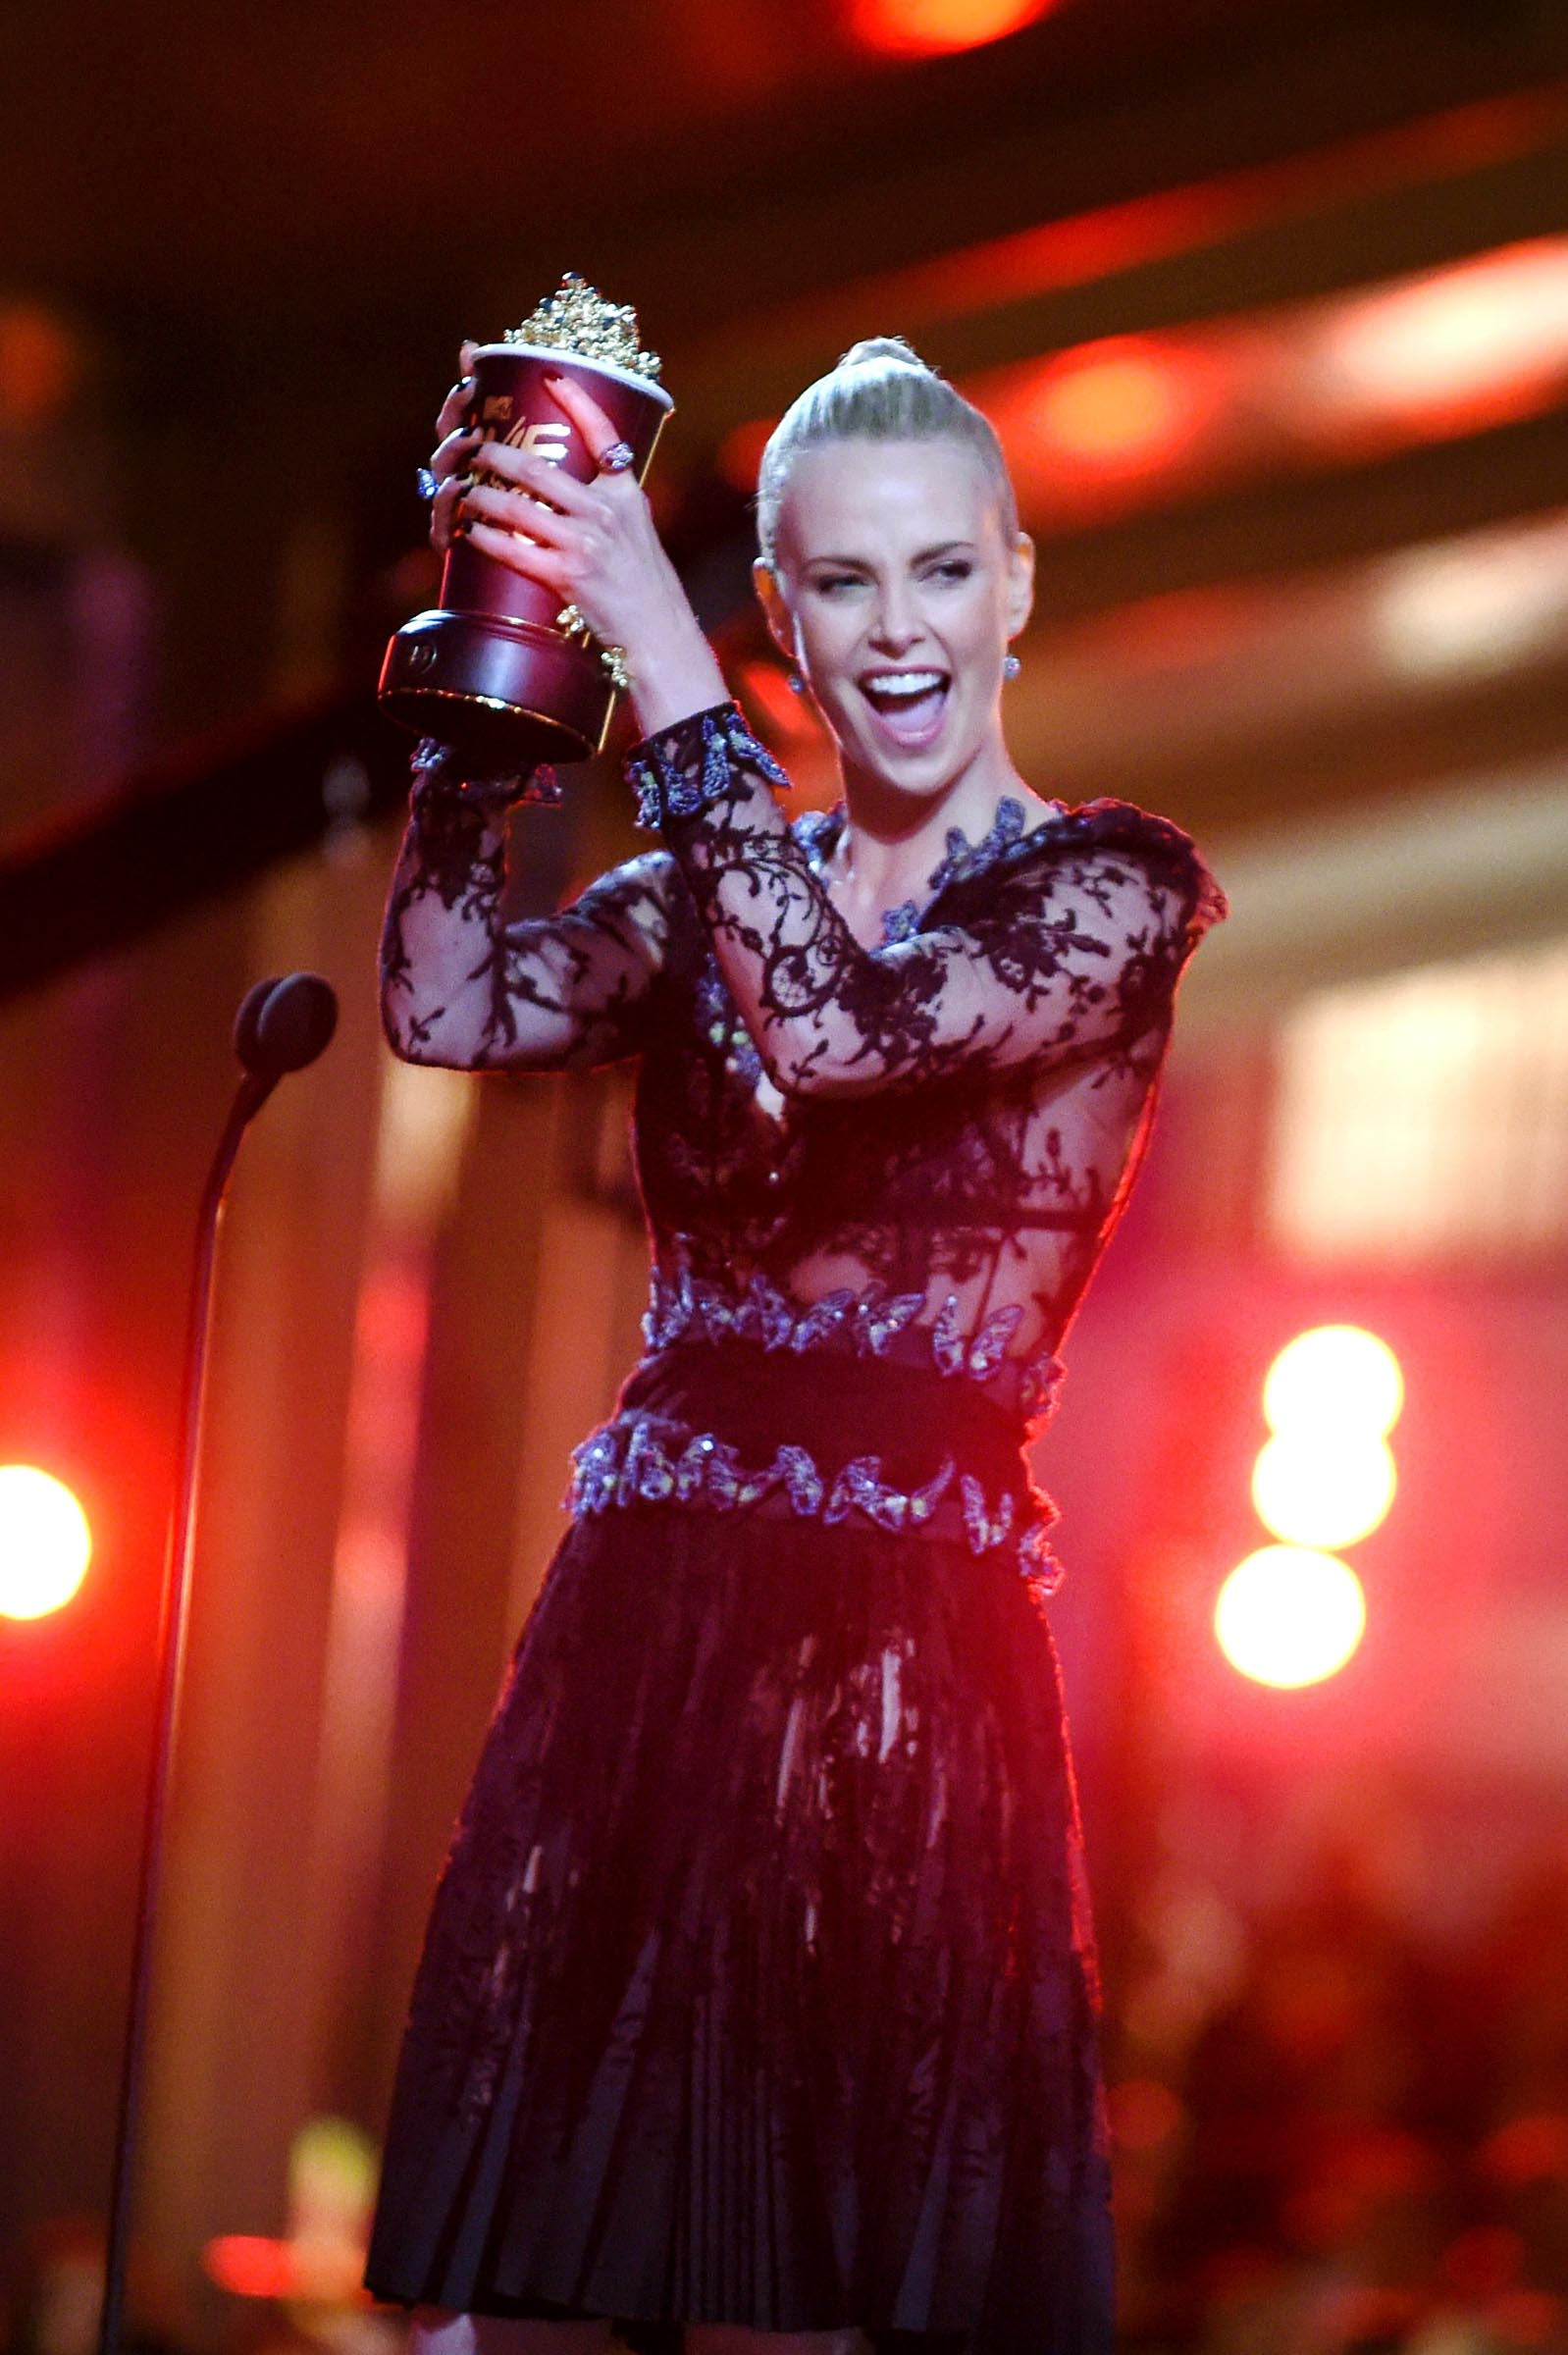 """BURBANK, CALIFORNIA - APRIL 09:  Actress Charlize Theron accepts Best Female Performance for 'Mad Max: Fury Road' onstage during the 2016 MTV Movie Awards at Warner Bros. Studios on April 9, 2016 in Burbank, California.  MTV Movie Awards airs April 10, 2016 at 8pm ET/PT.  (Photo by Emma McIntyre/Getty Images for MTV)"""